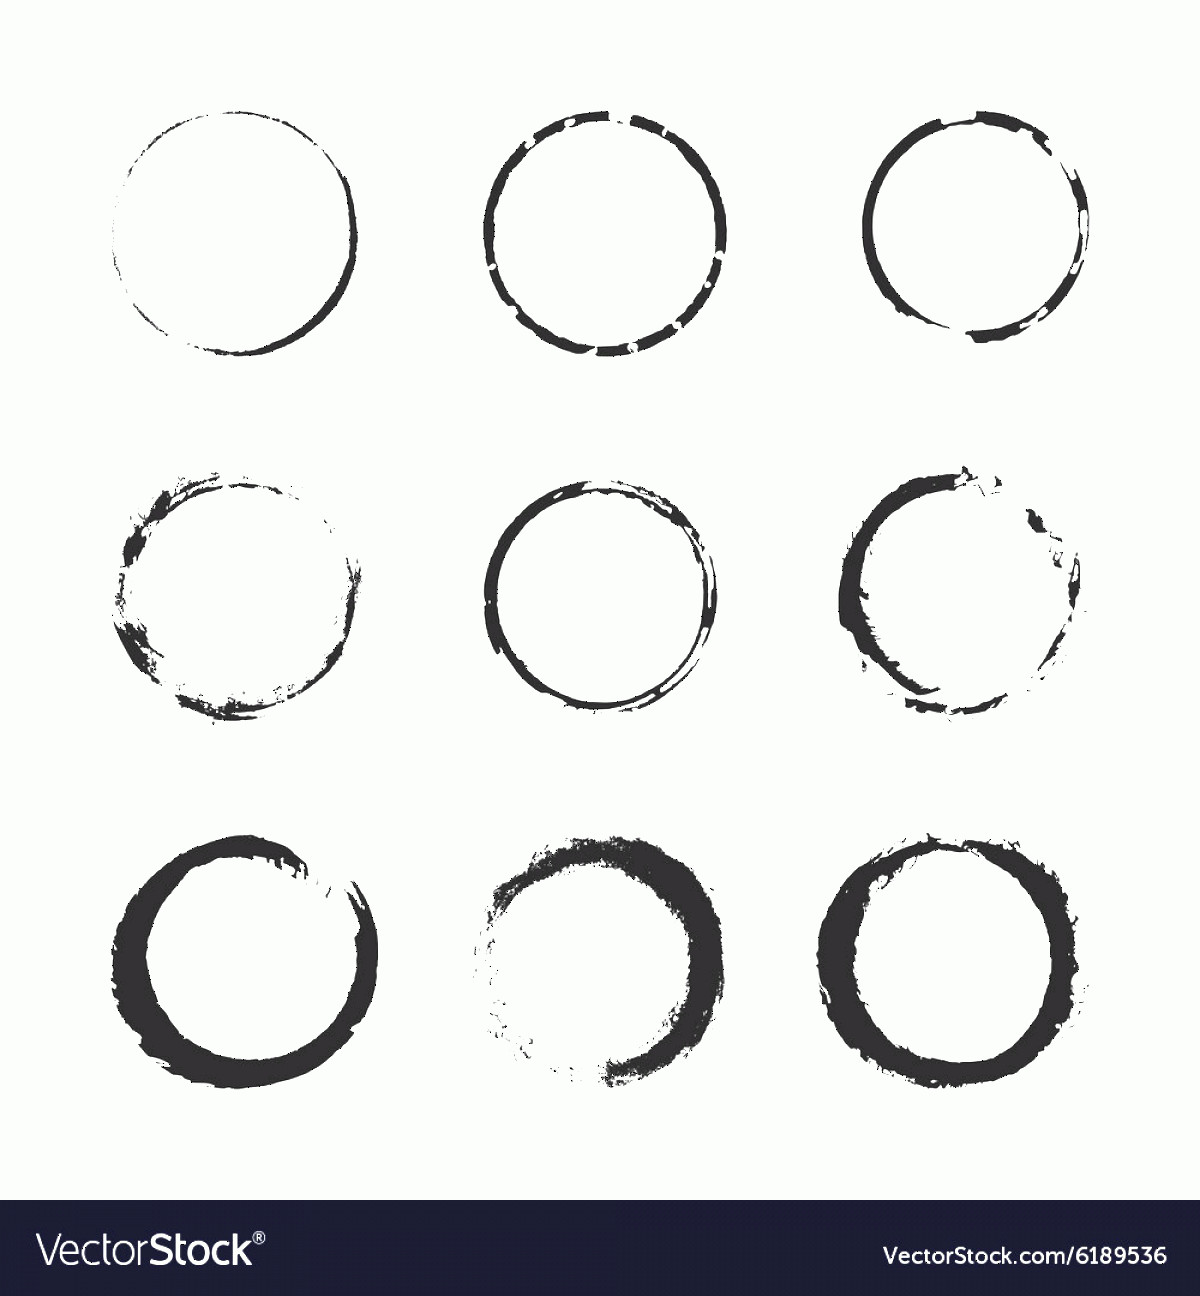 Distressed Border Circle Vector: Grunge Circle Border Set Vector